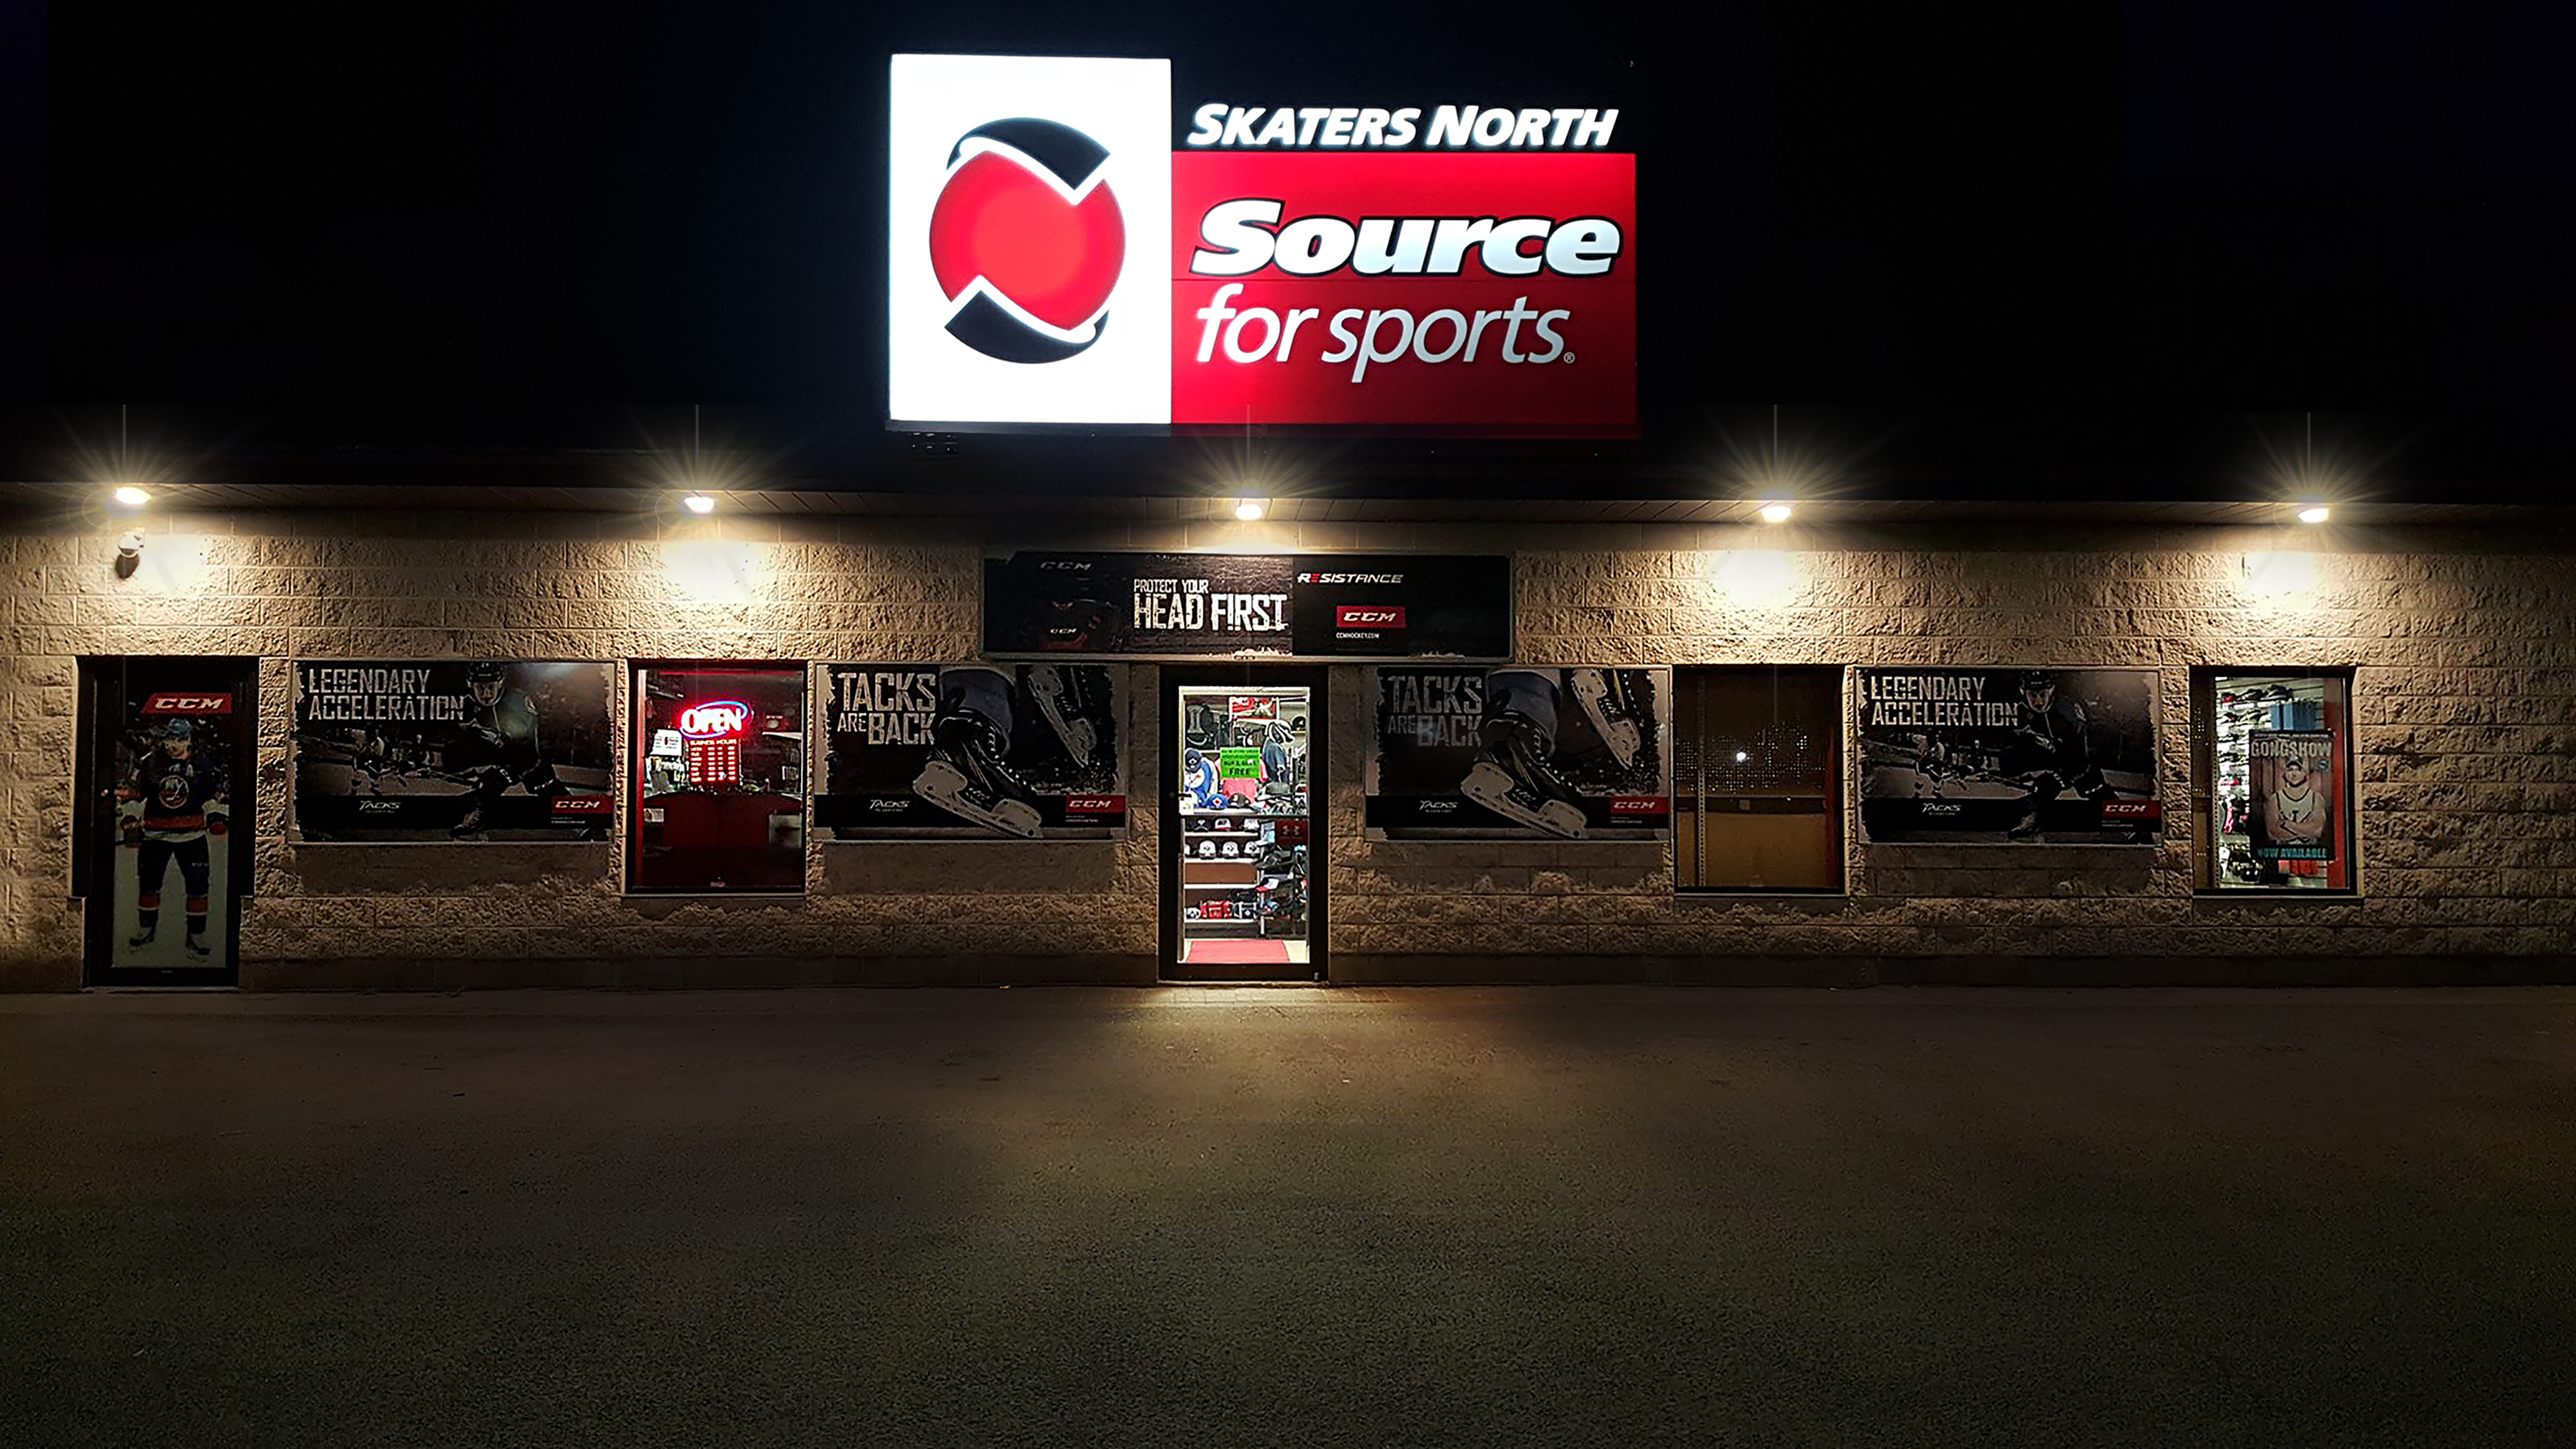 Skaters North Source For Sports